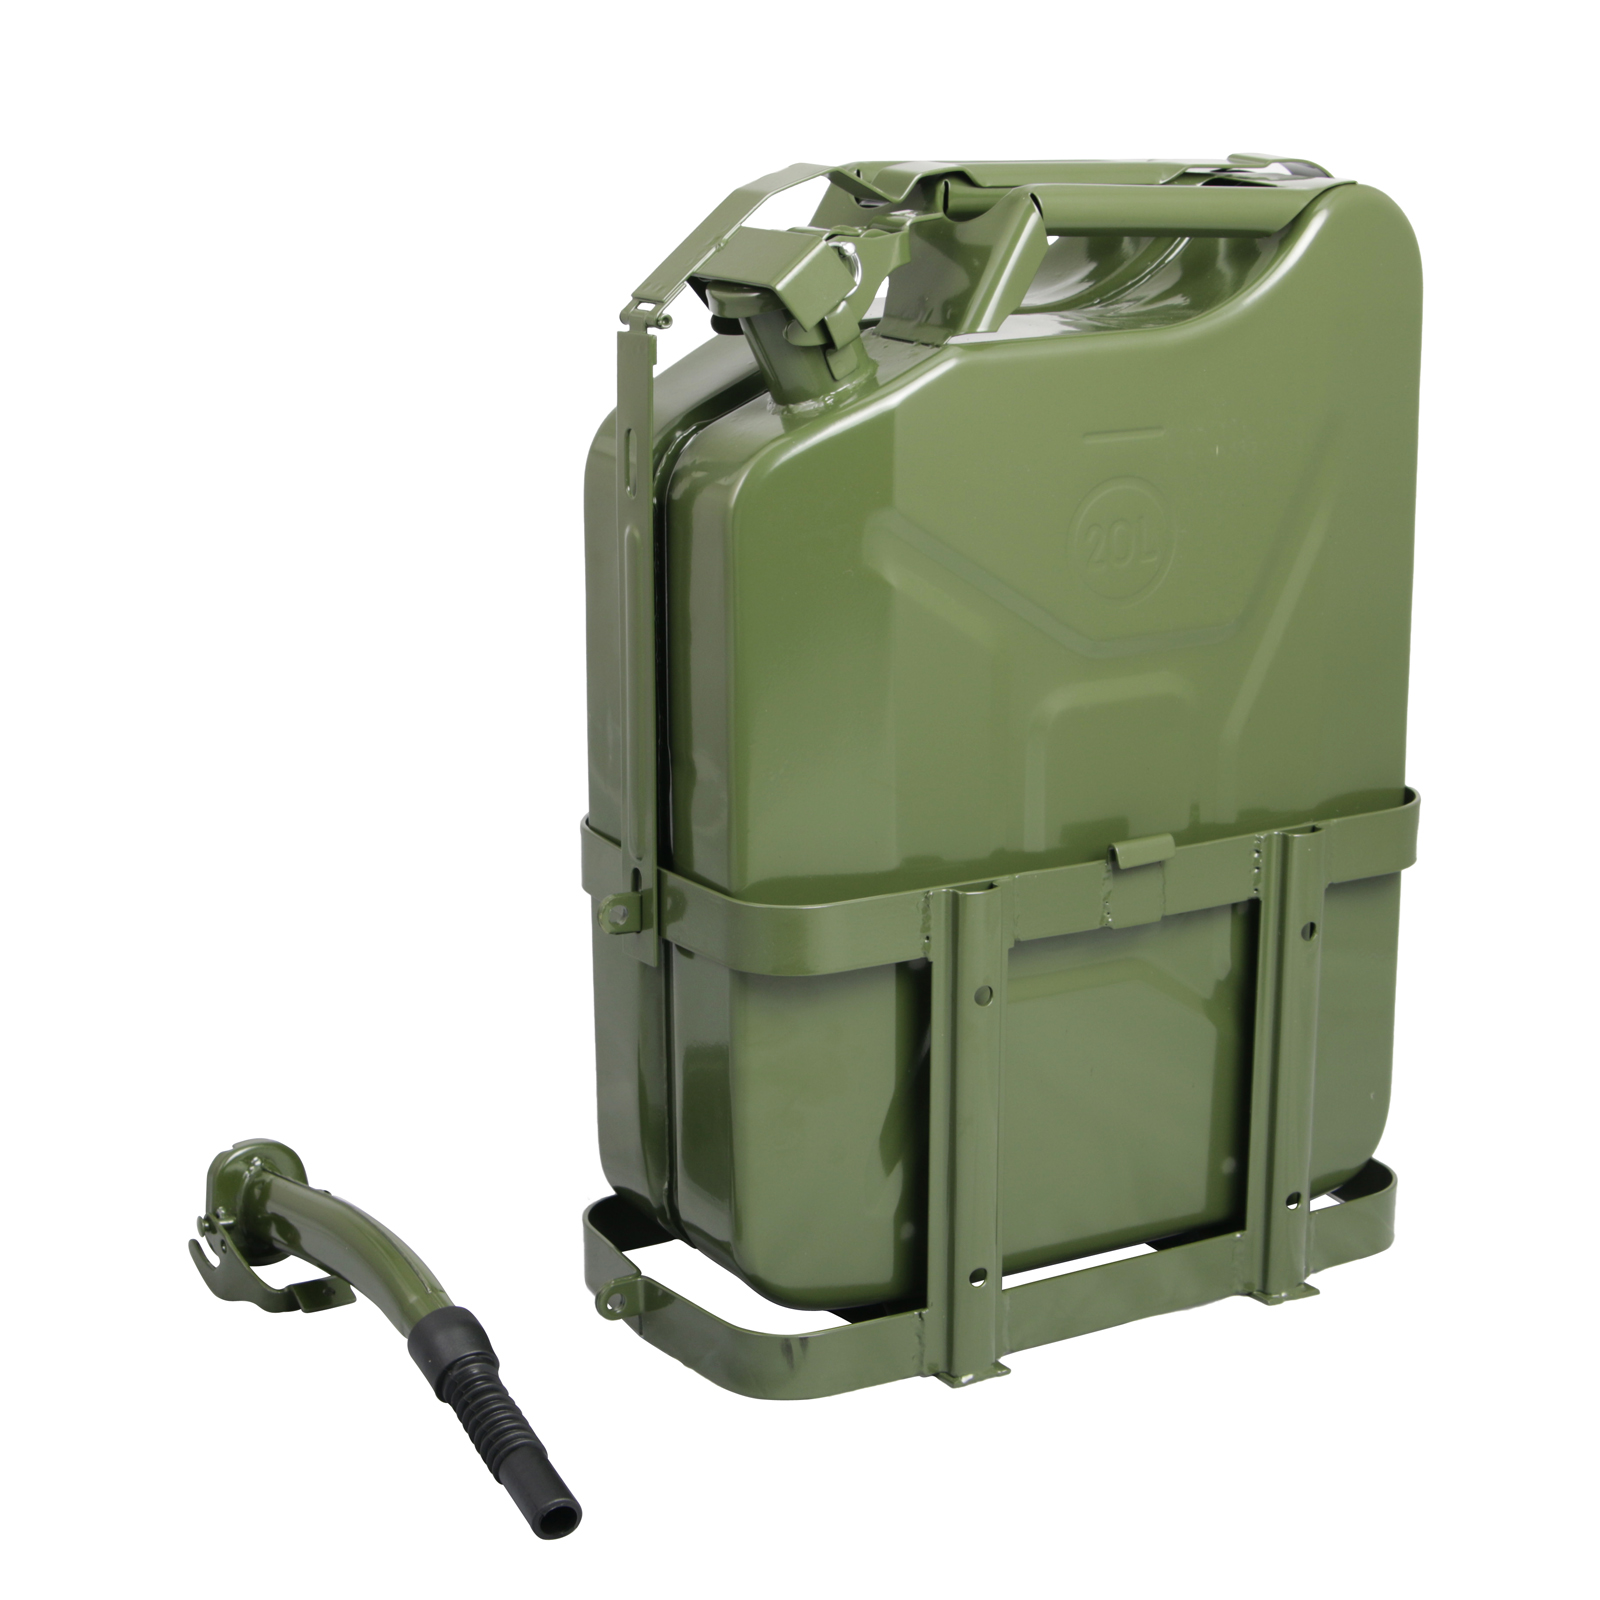 Jerry Can With Holder 20L Liter (5 Gallons)